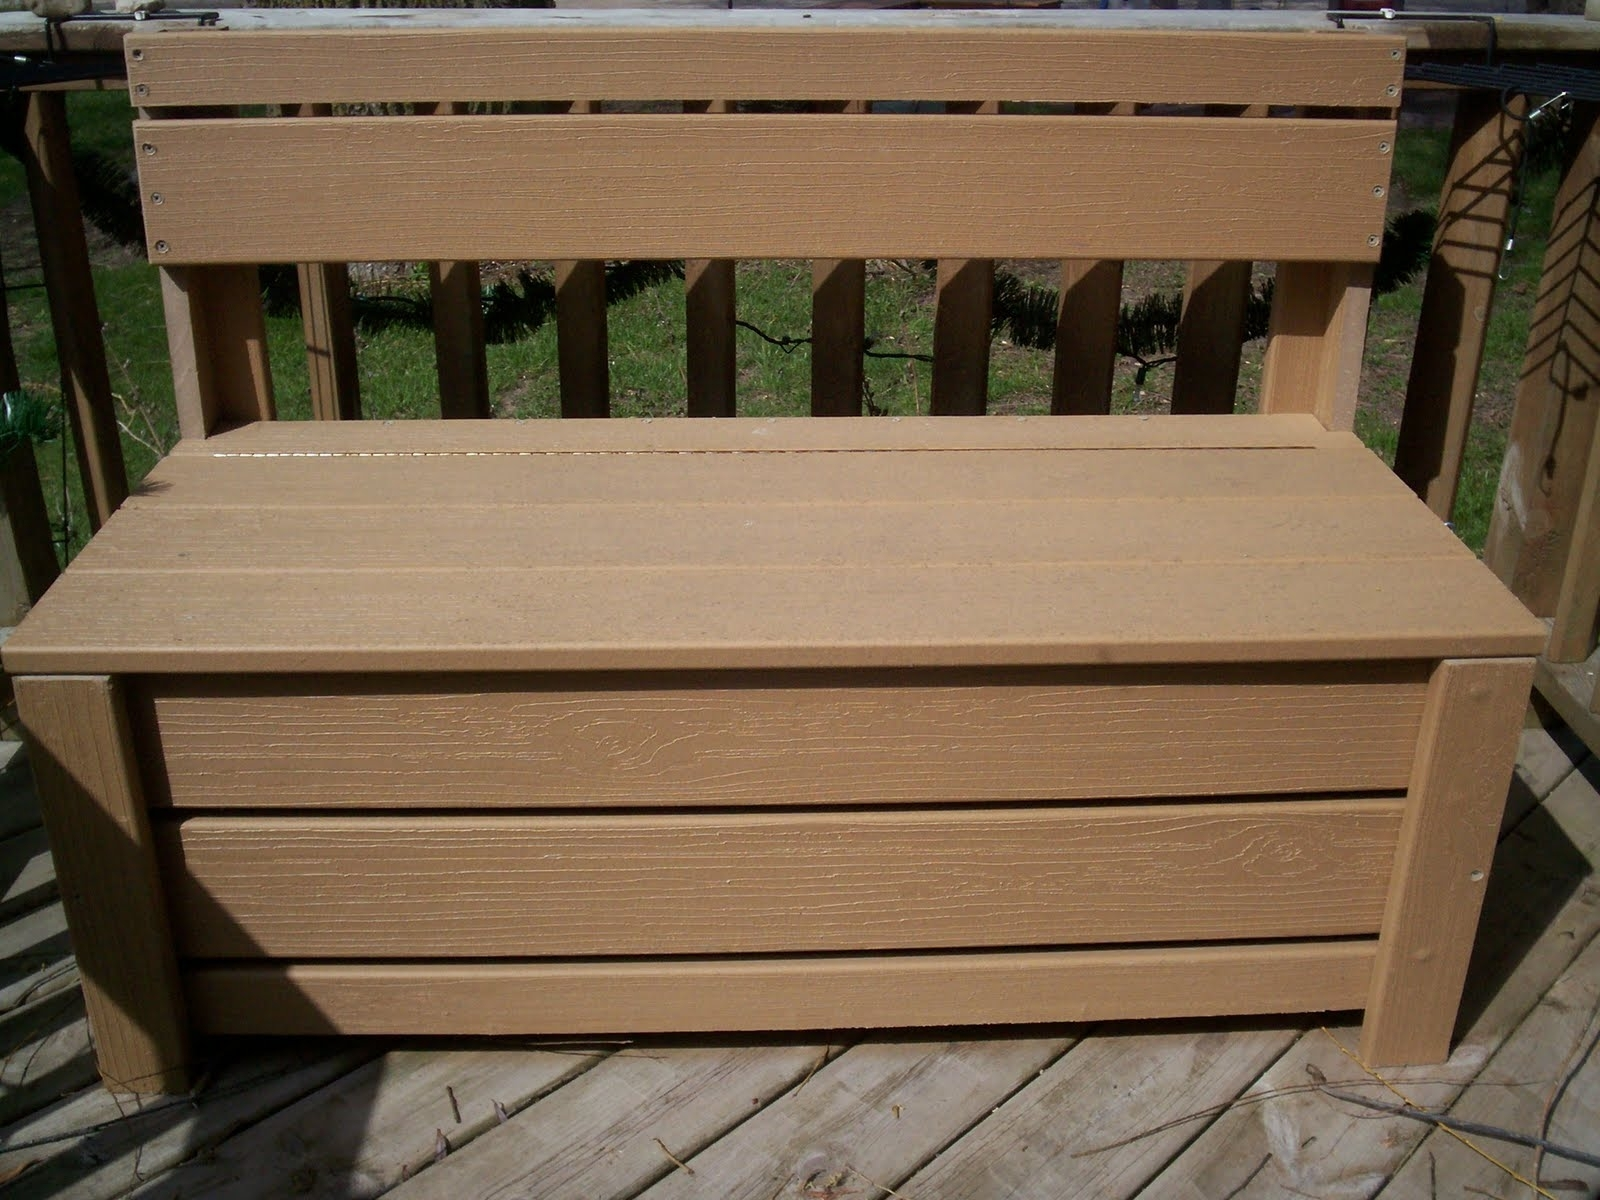 Simple Storage Bench Plans Corner Storage Bench Plans Ideas For Outdoor Cushion Storage Bench Classic Outdoor Cushion Storage Bench